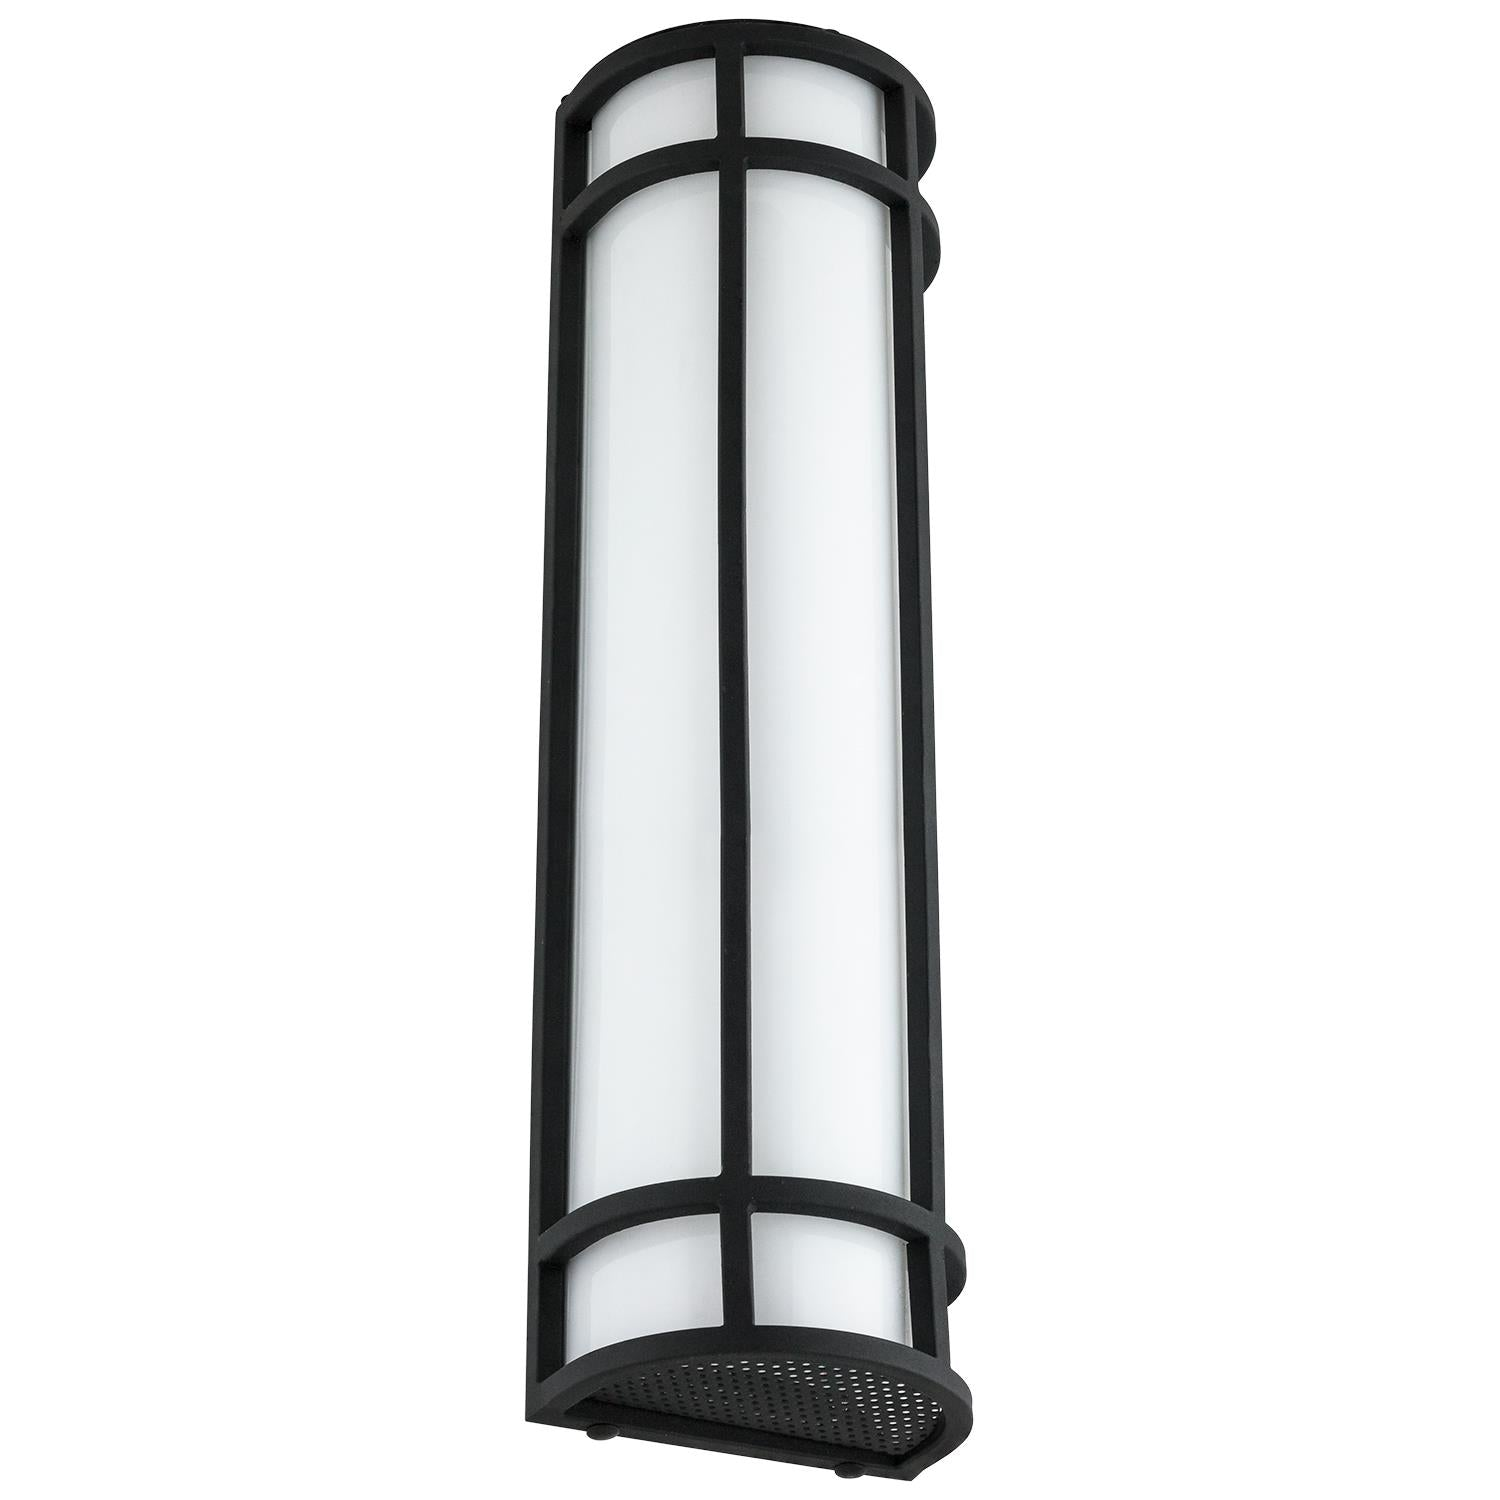 SUNLITE 23W 24in. Integrated LED Outdoor AQ Wall Sconce 3000K Warm White